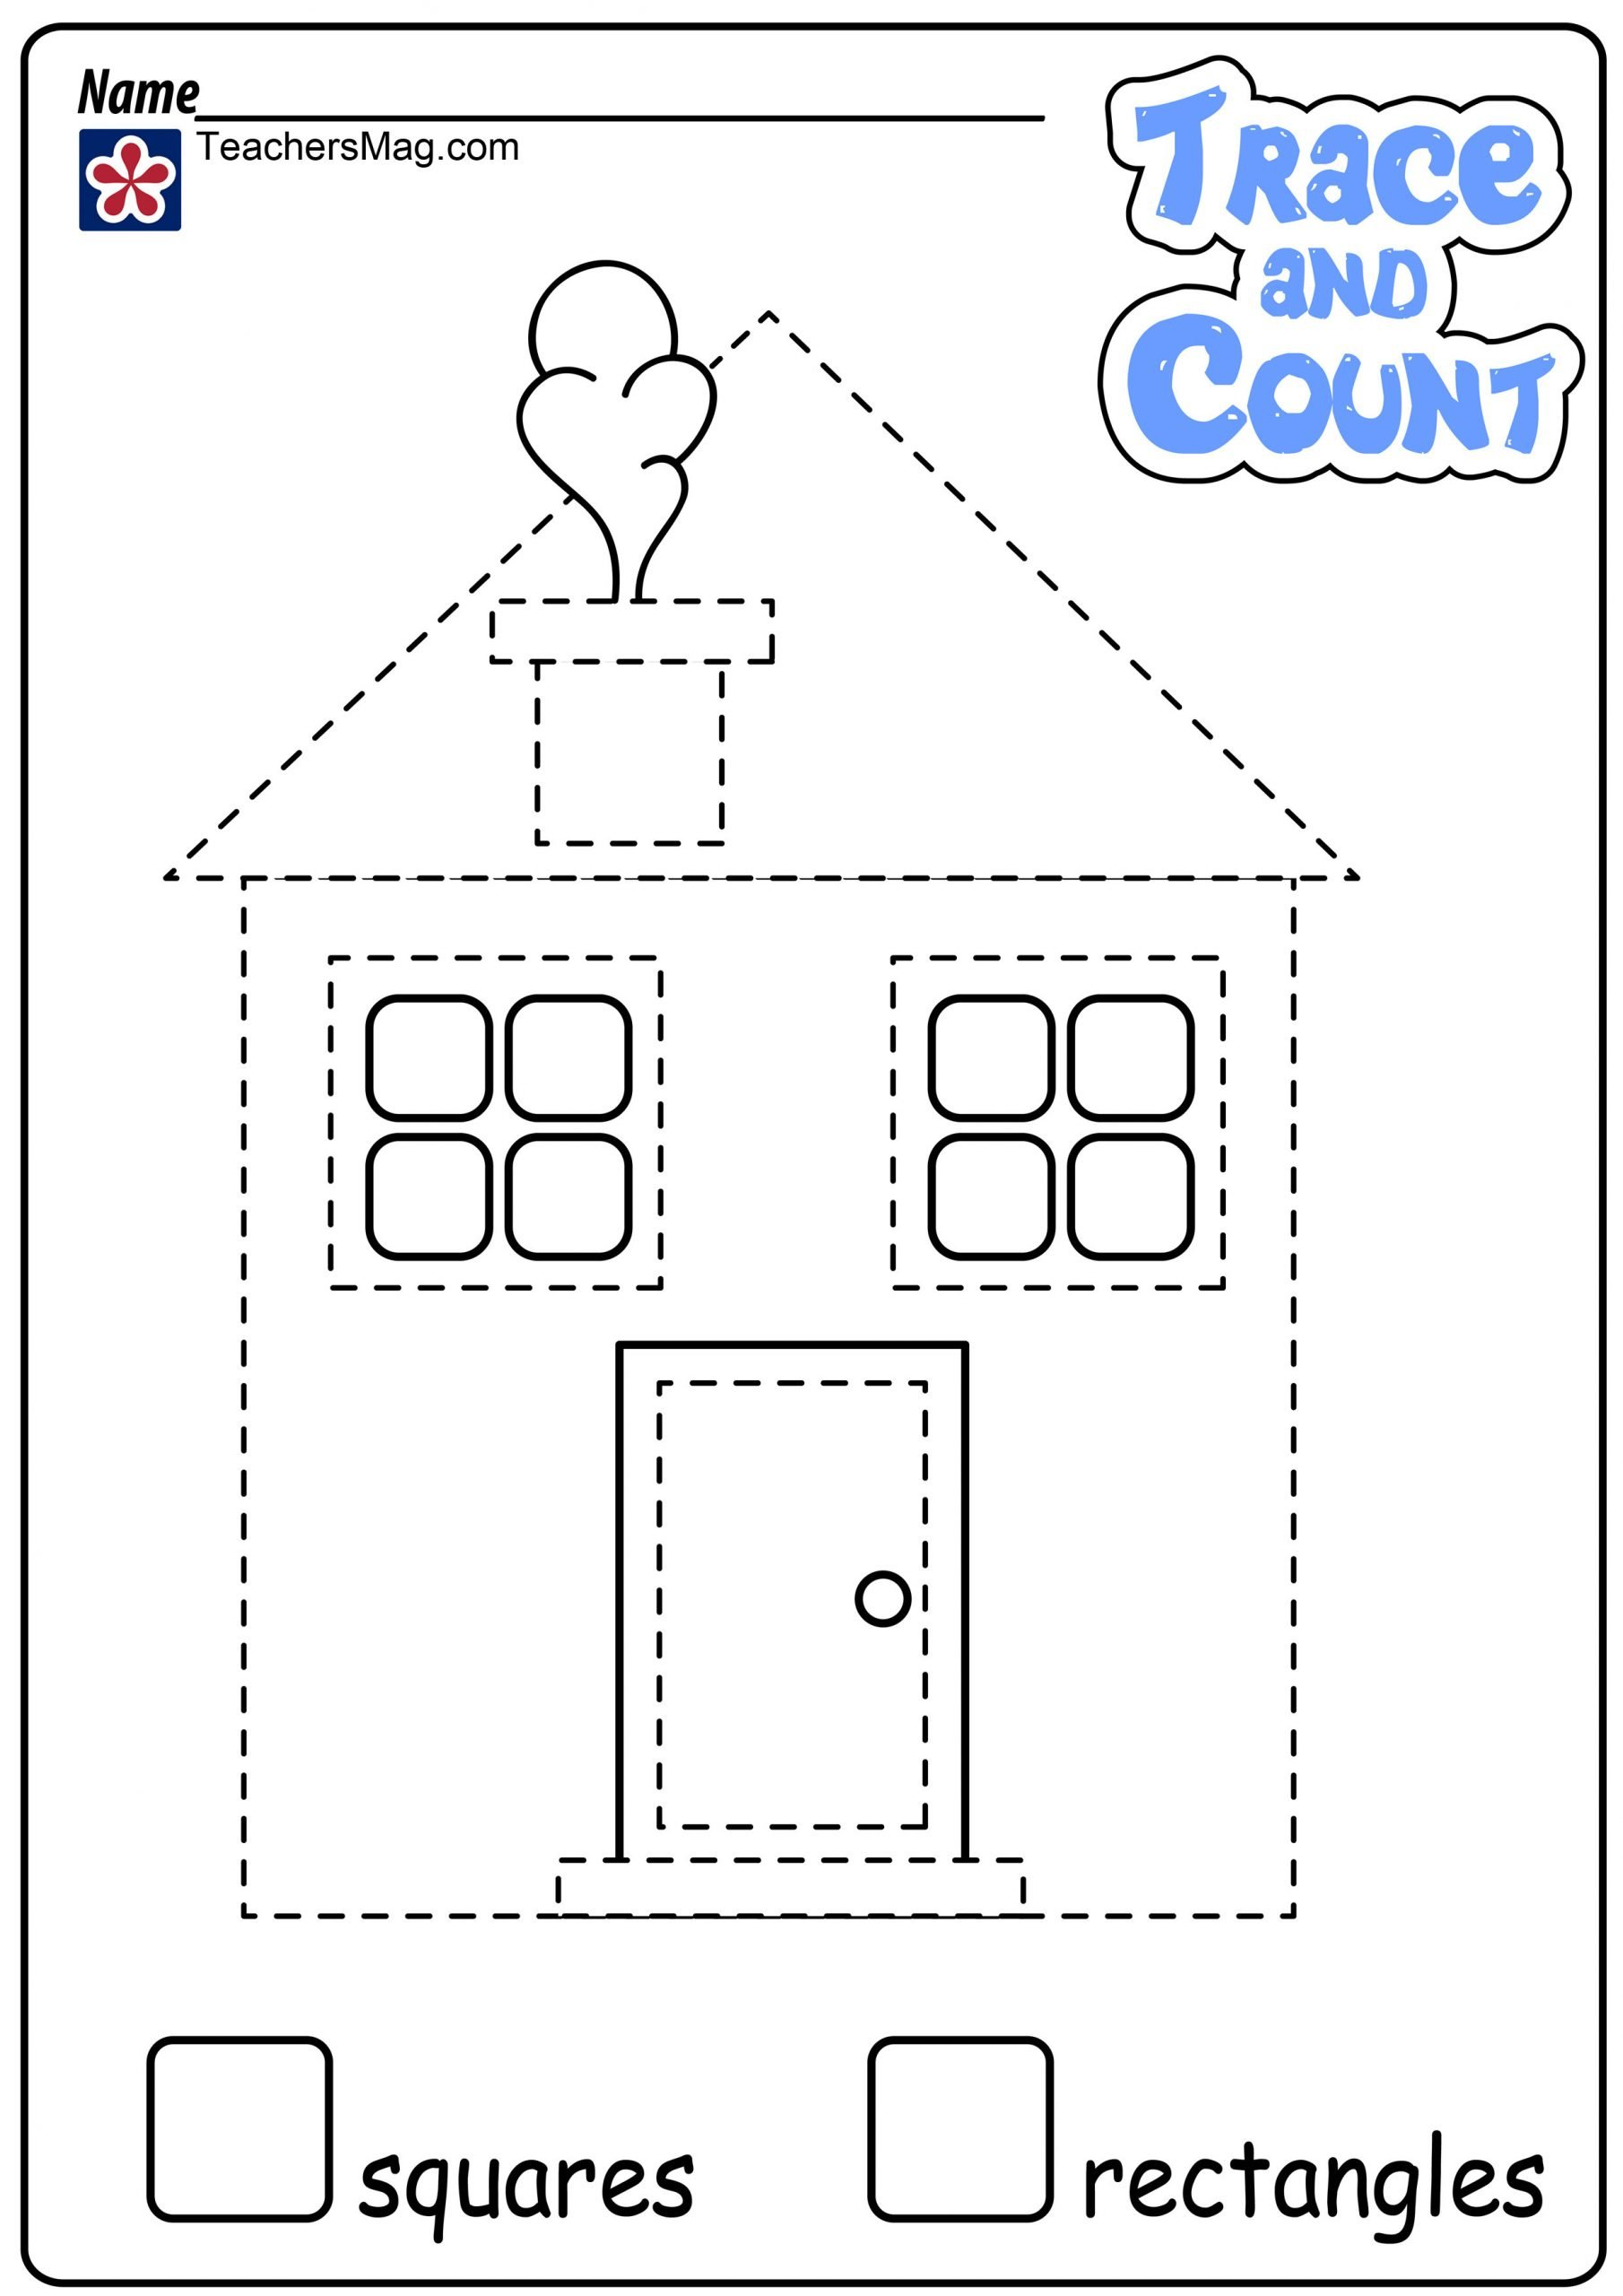 Identifying 2d Shapes Worksheets Identifying 2d Shapes Worksheet